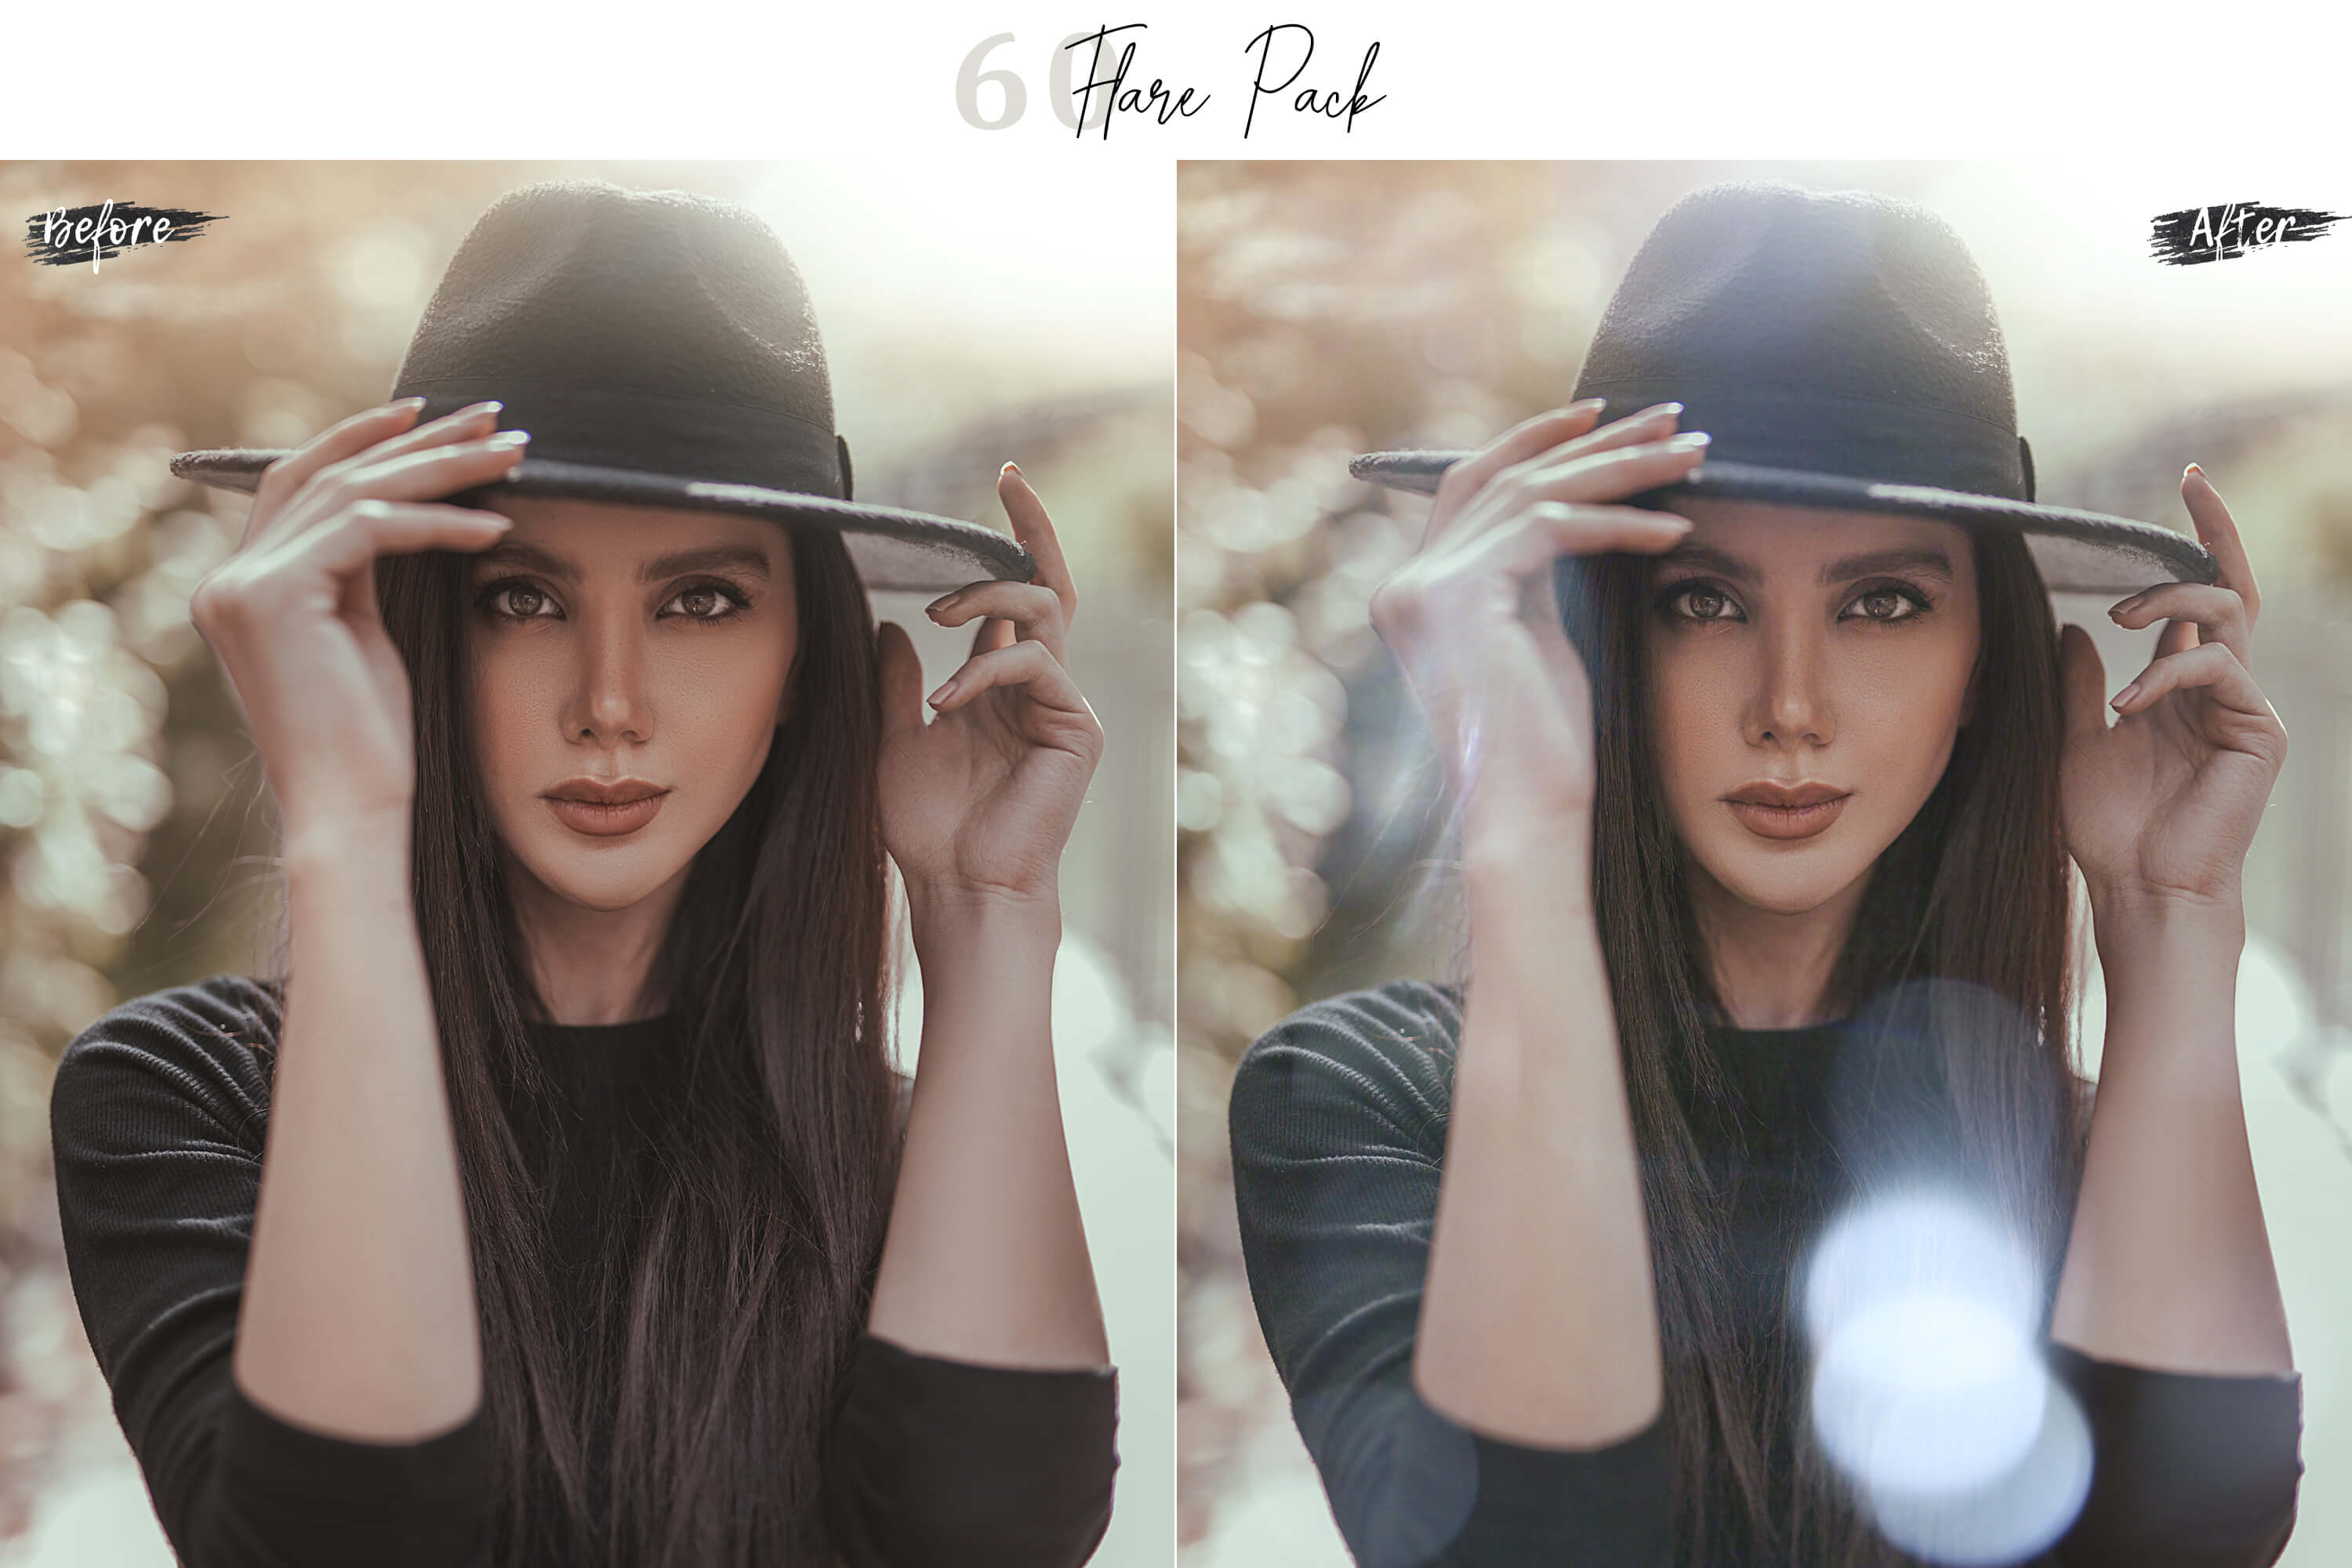 60 Flare Pack 03 lights Effect Photo Overlays example image 6